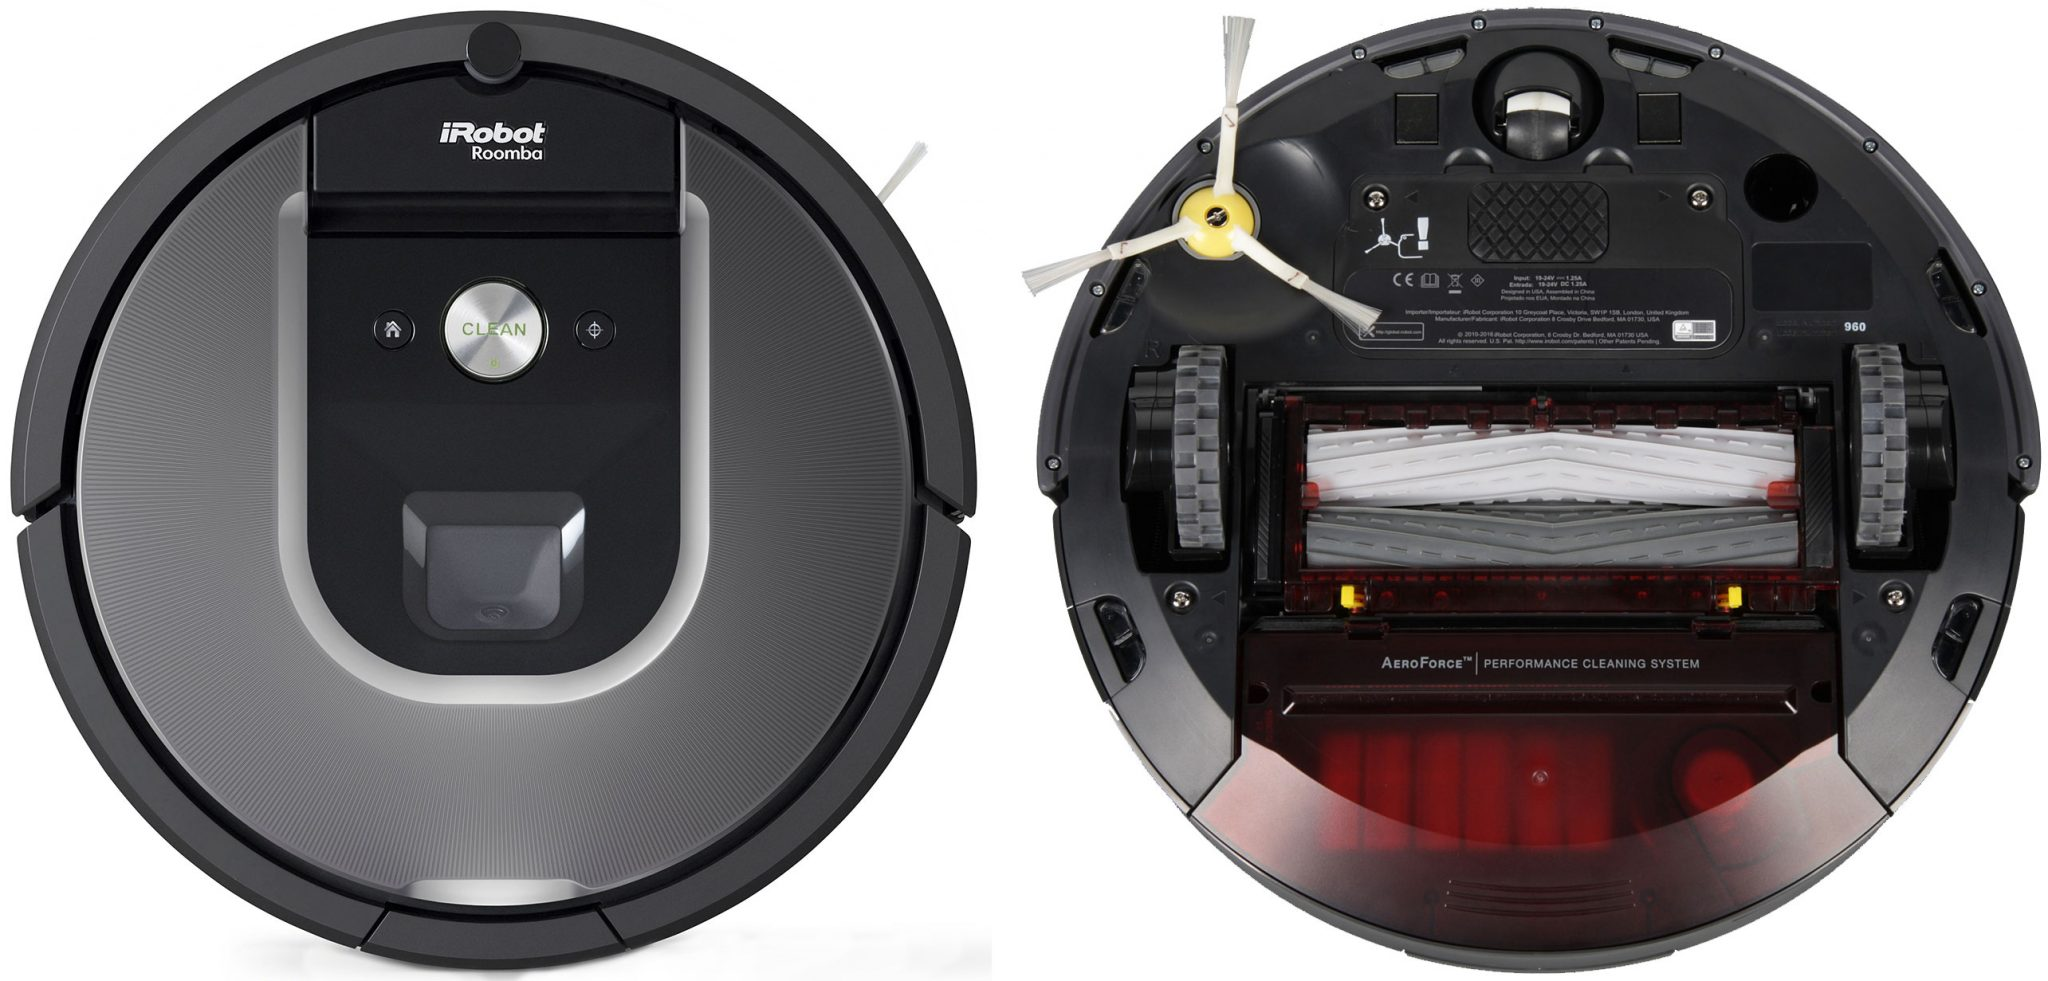 iRobot Roomba 960 top and bottom